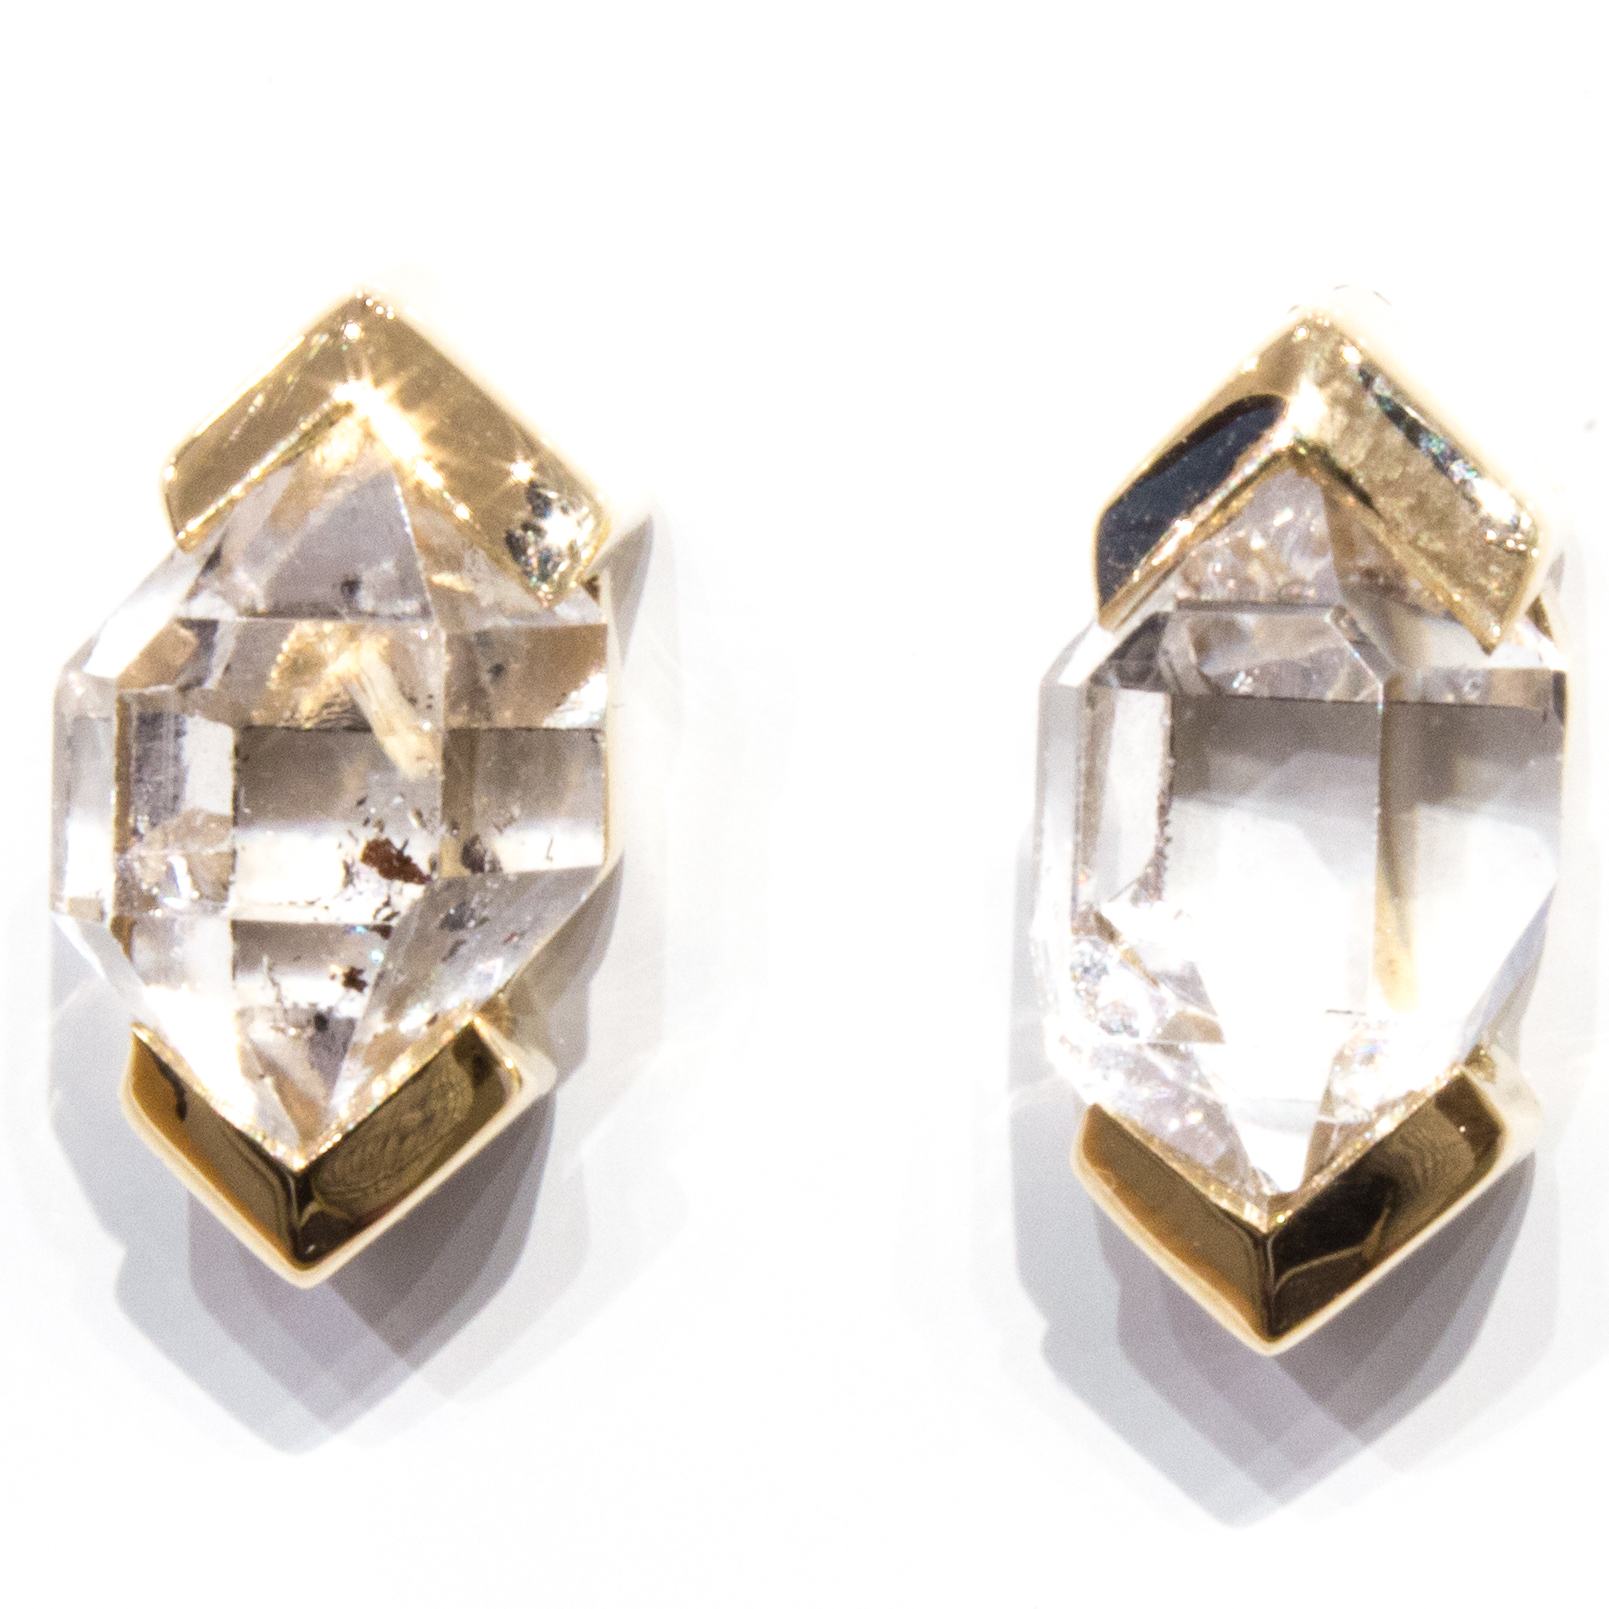 Herkimer Diamonds Studs in 14 Ct Gold